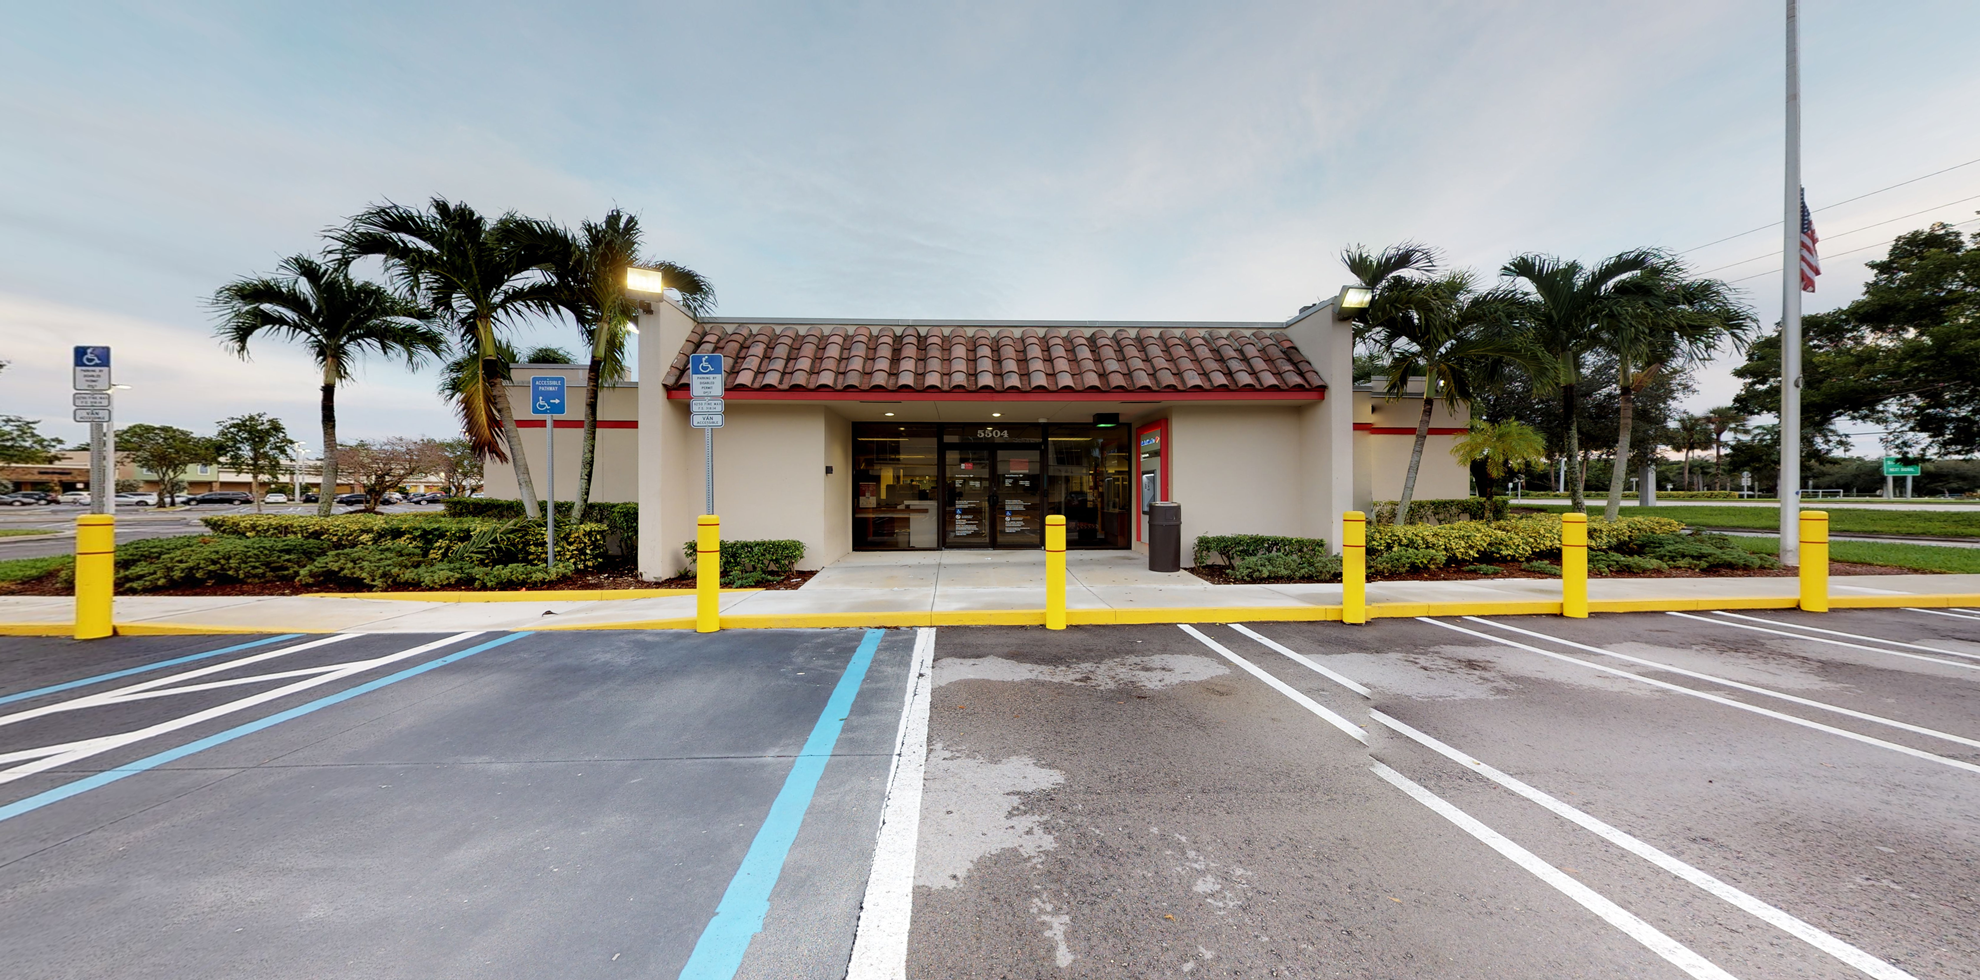 Bank of America financial center with drive-thru ATM   5504 S Flamingo Rd, Cooper City, FL 33330